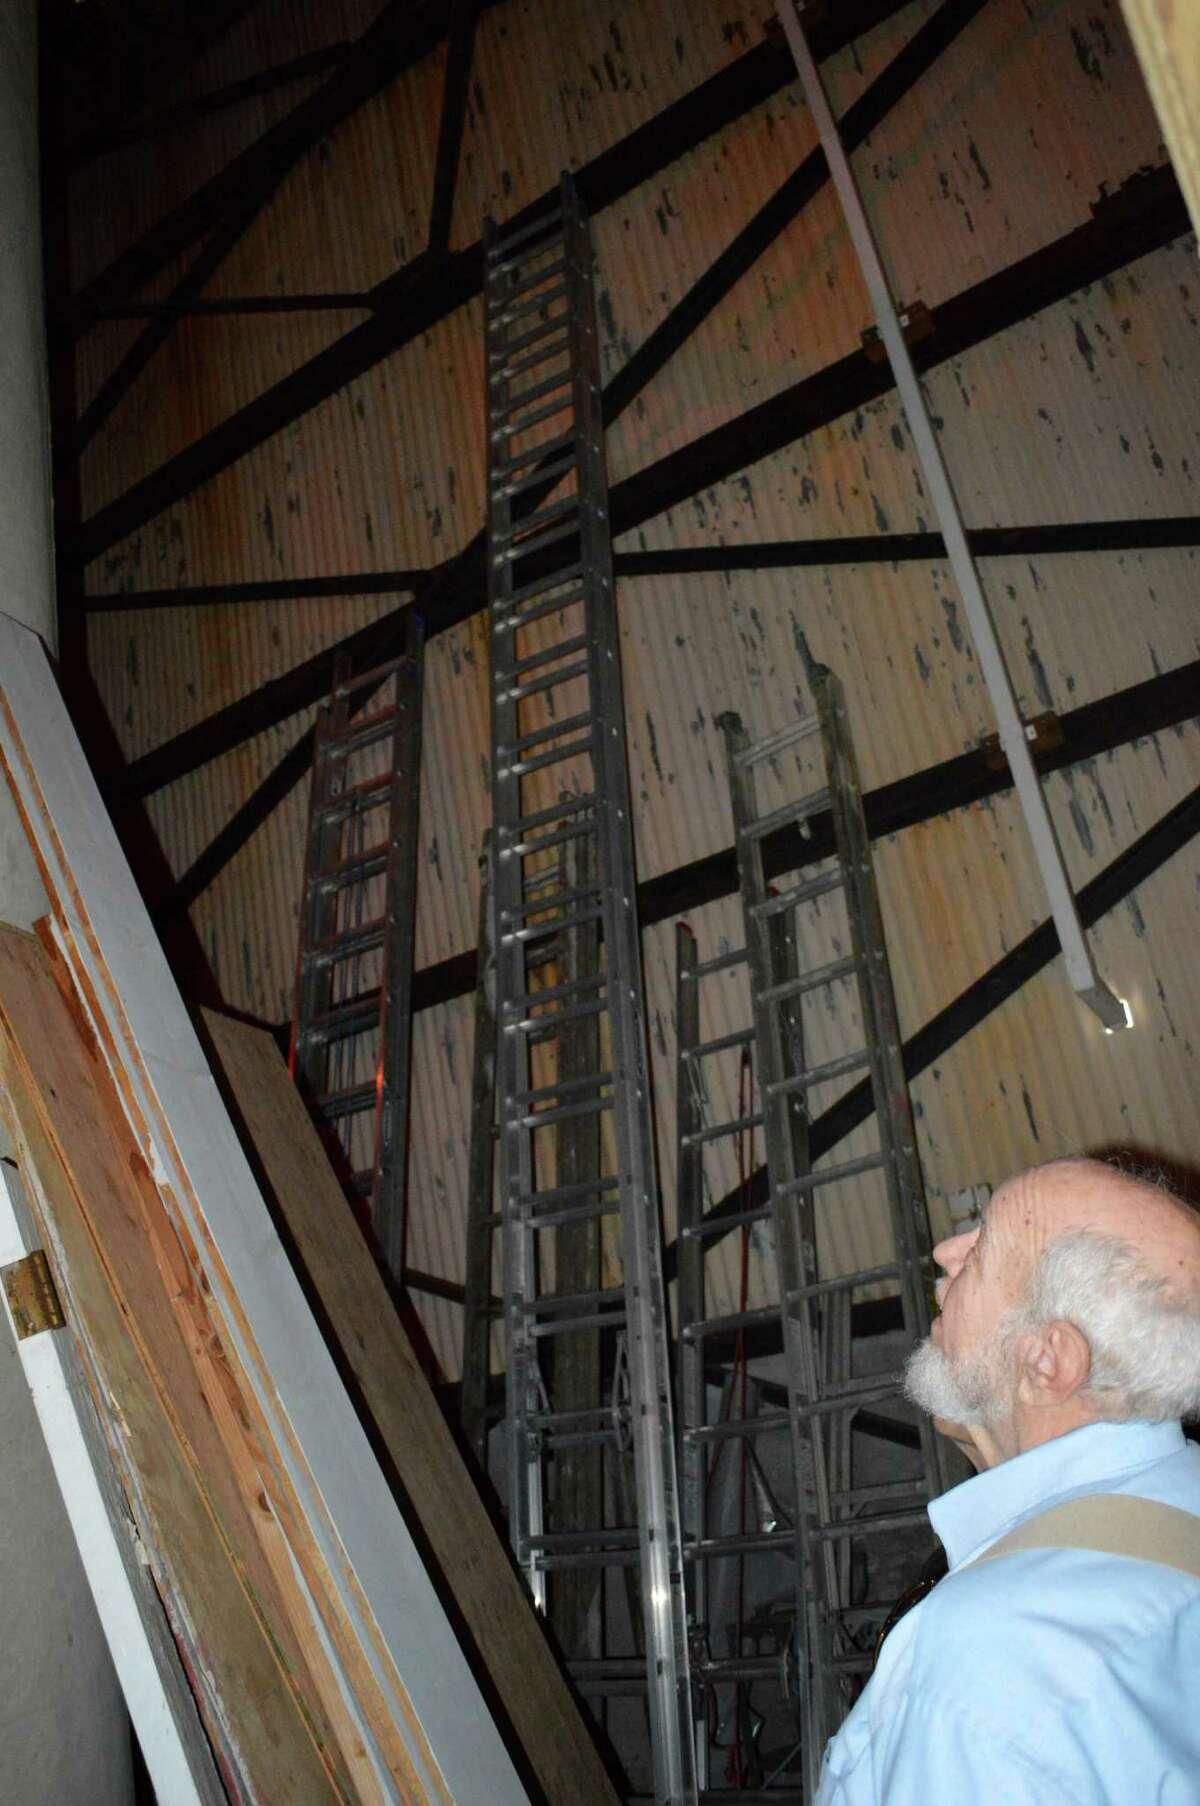 Industrial archaeologist Bob Stewart examines the inside of the former Nike radar installation's south tower, where the Rolnick Observatory is now housed.